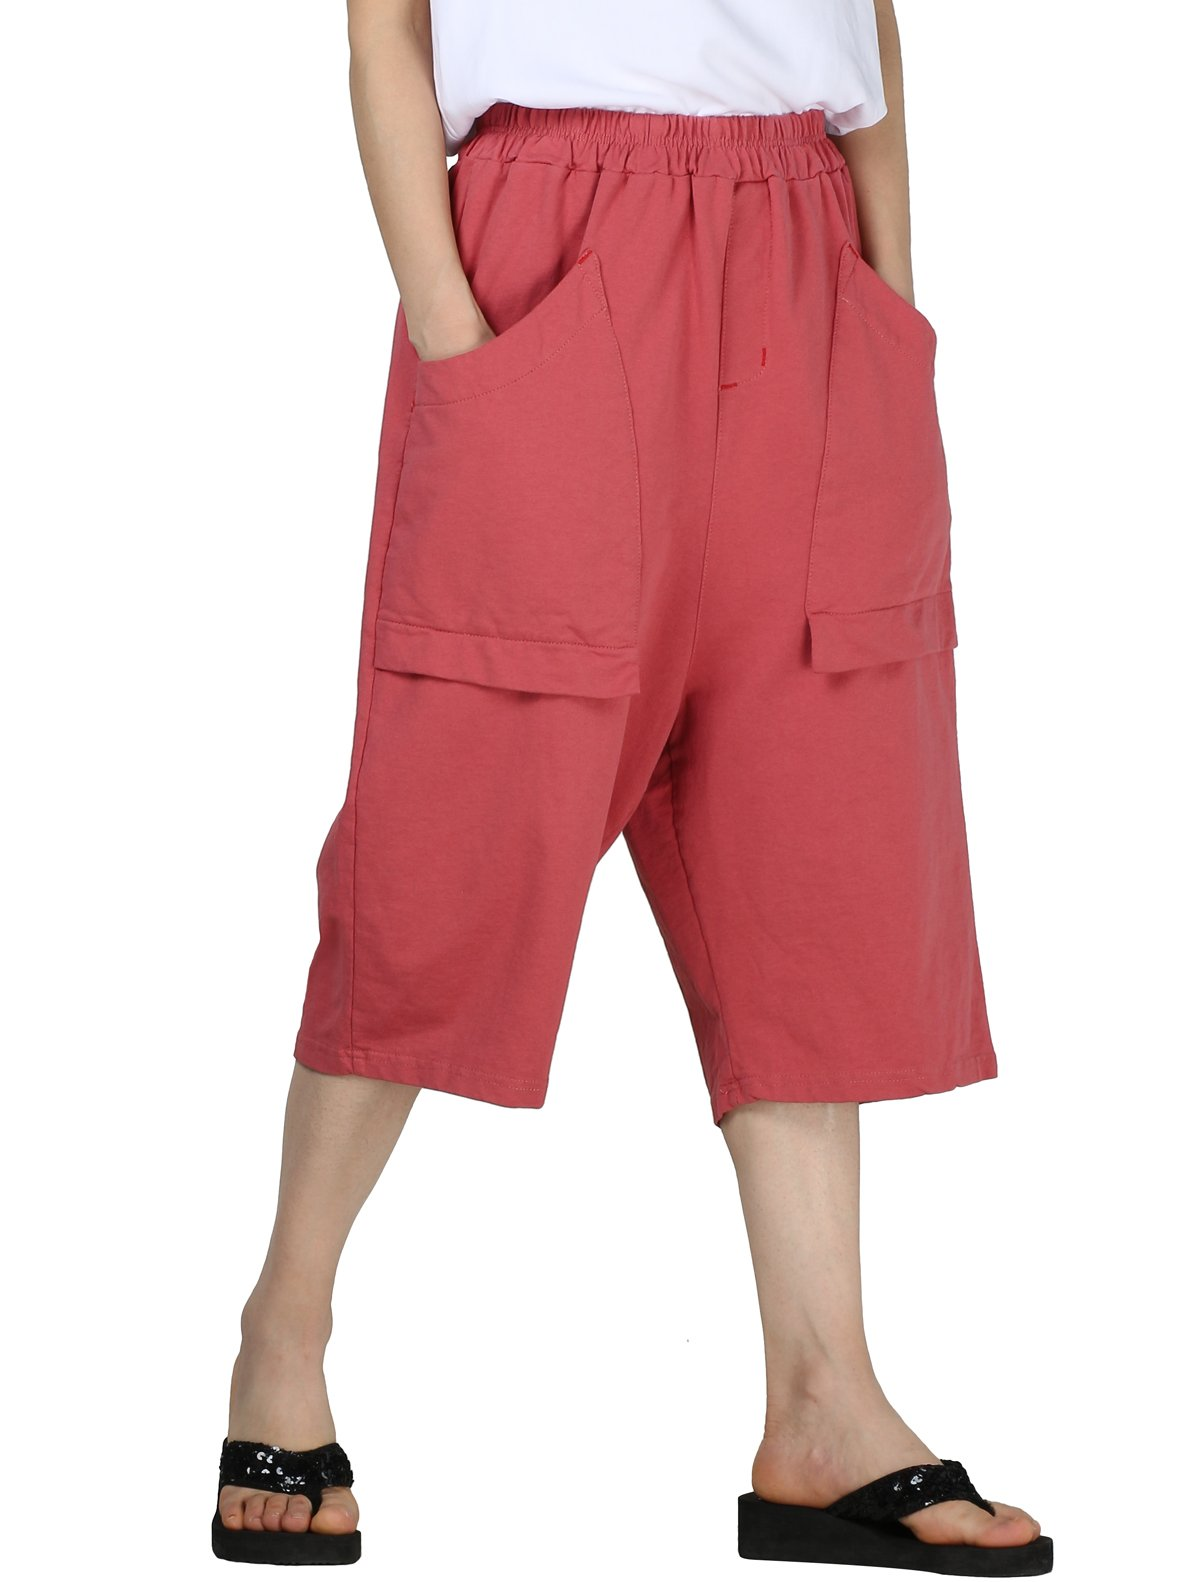 Mordenmiss Women's New Cotton Lounge Pull On Capri Pants with Pockets L Red